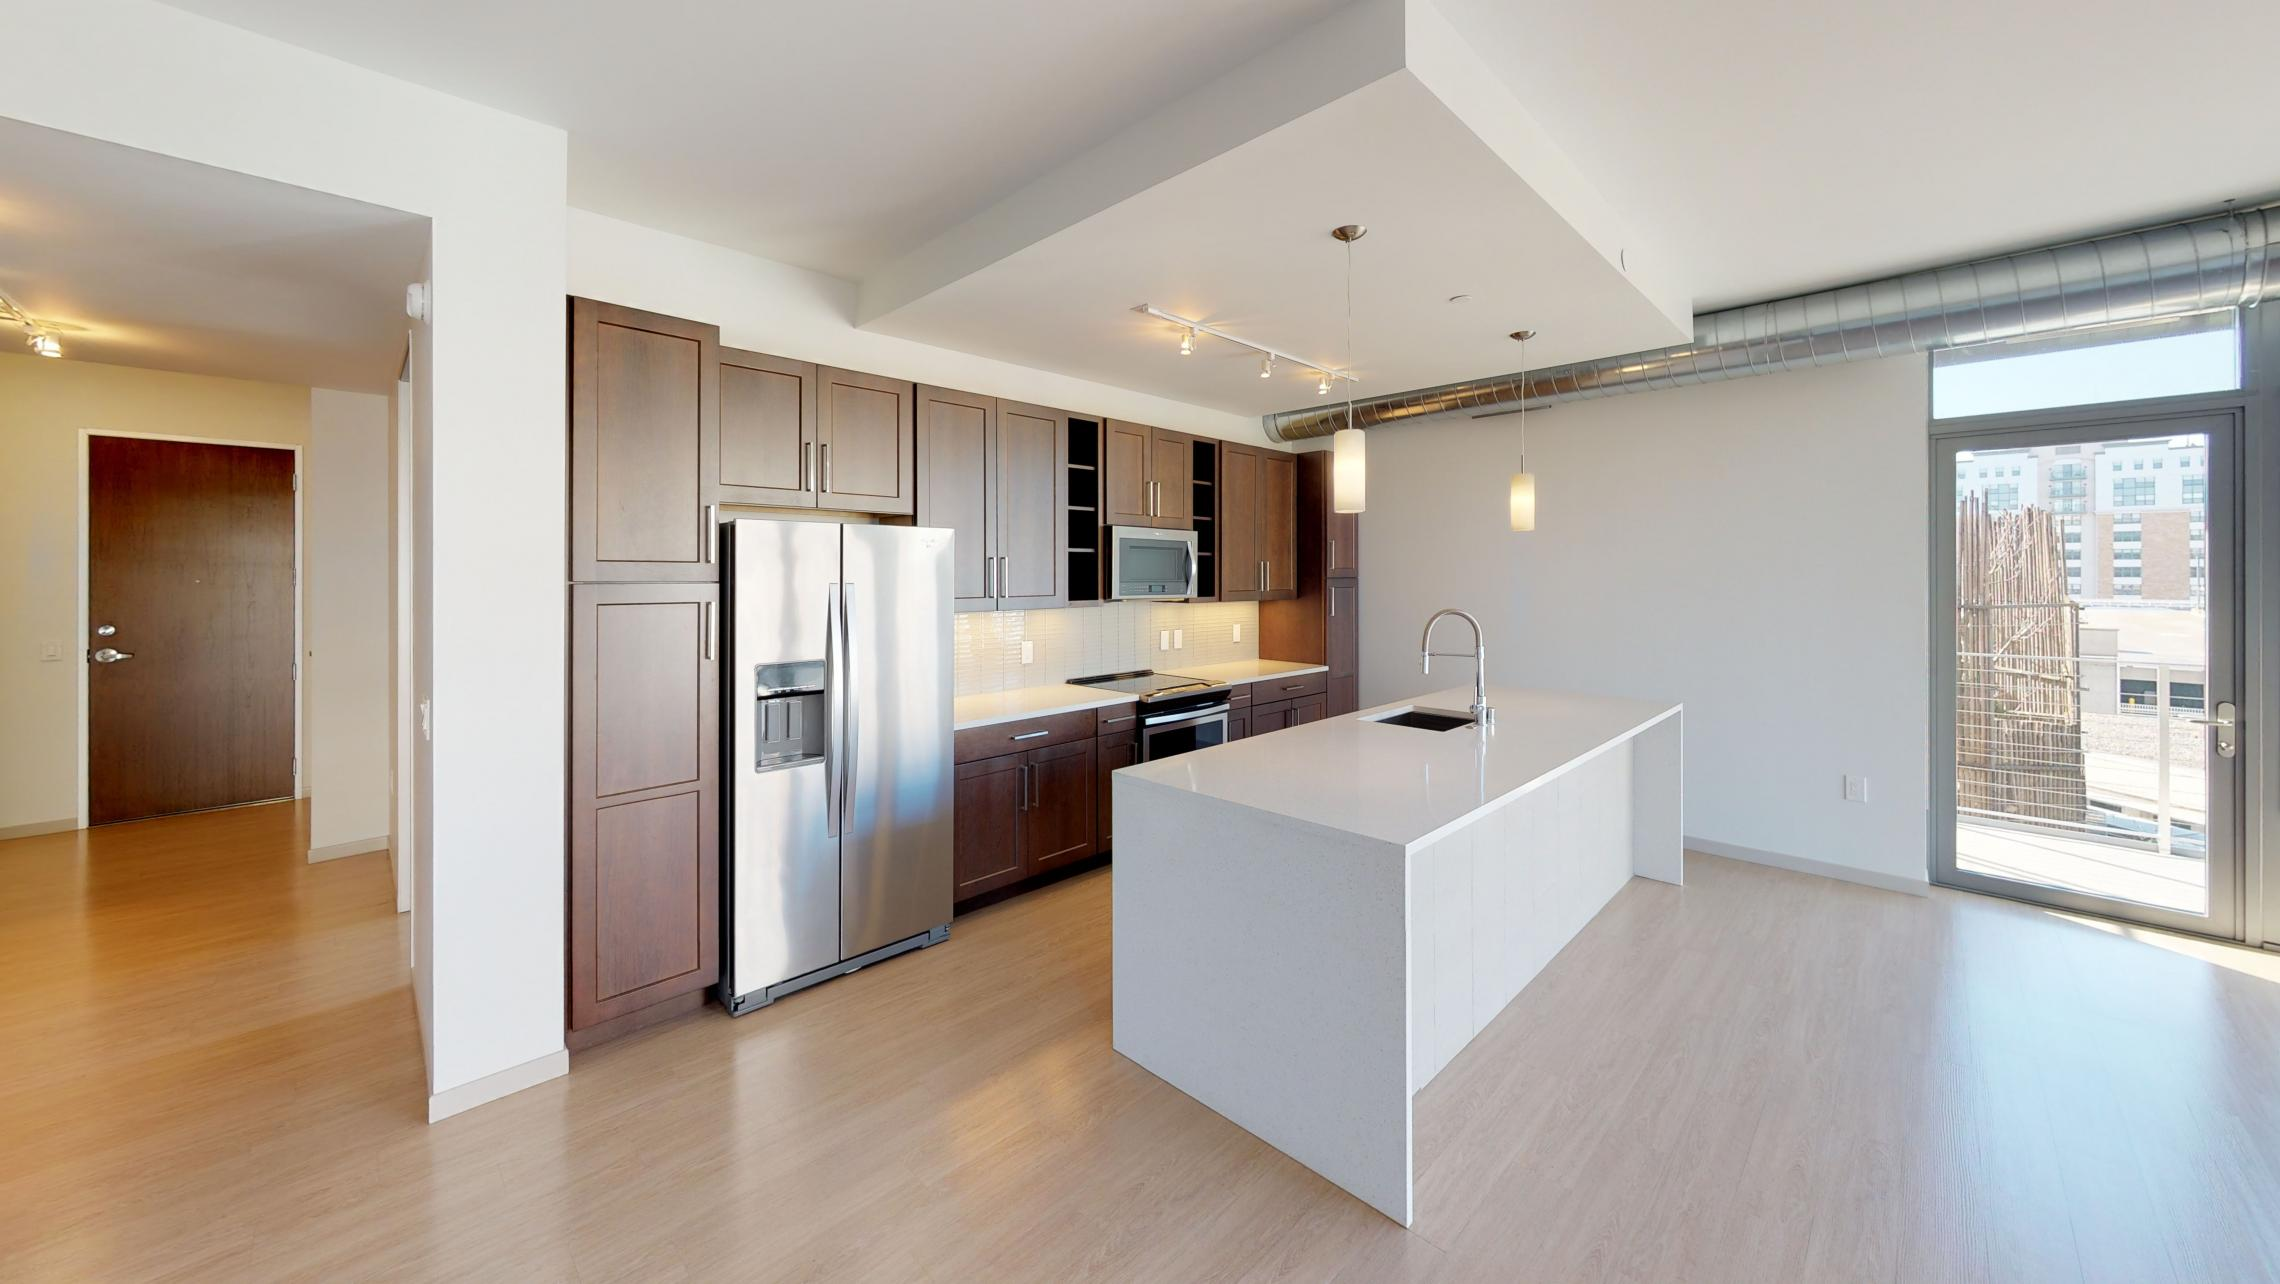 Pressman-Kitchen-Apartment-512-Two-Bedroom-Downtown-Upscale-Luxury-Capitol-View-Balcony-Corner-Lake-Madison